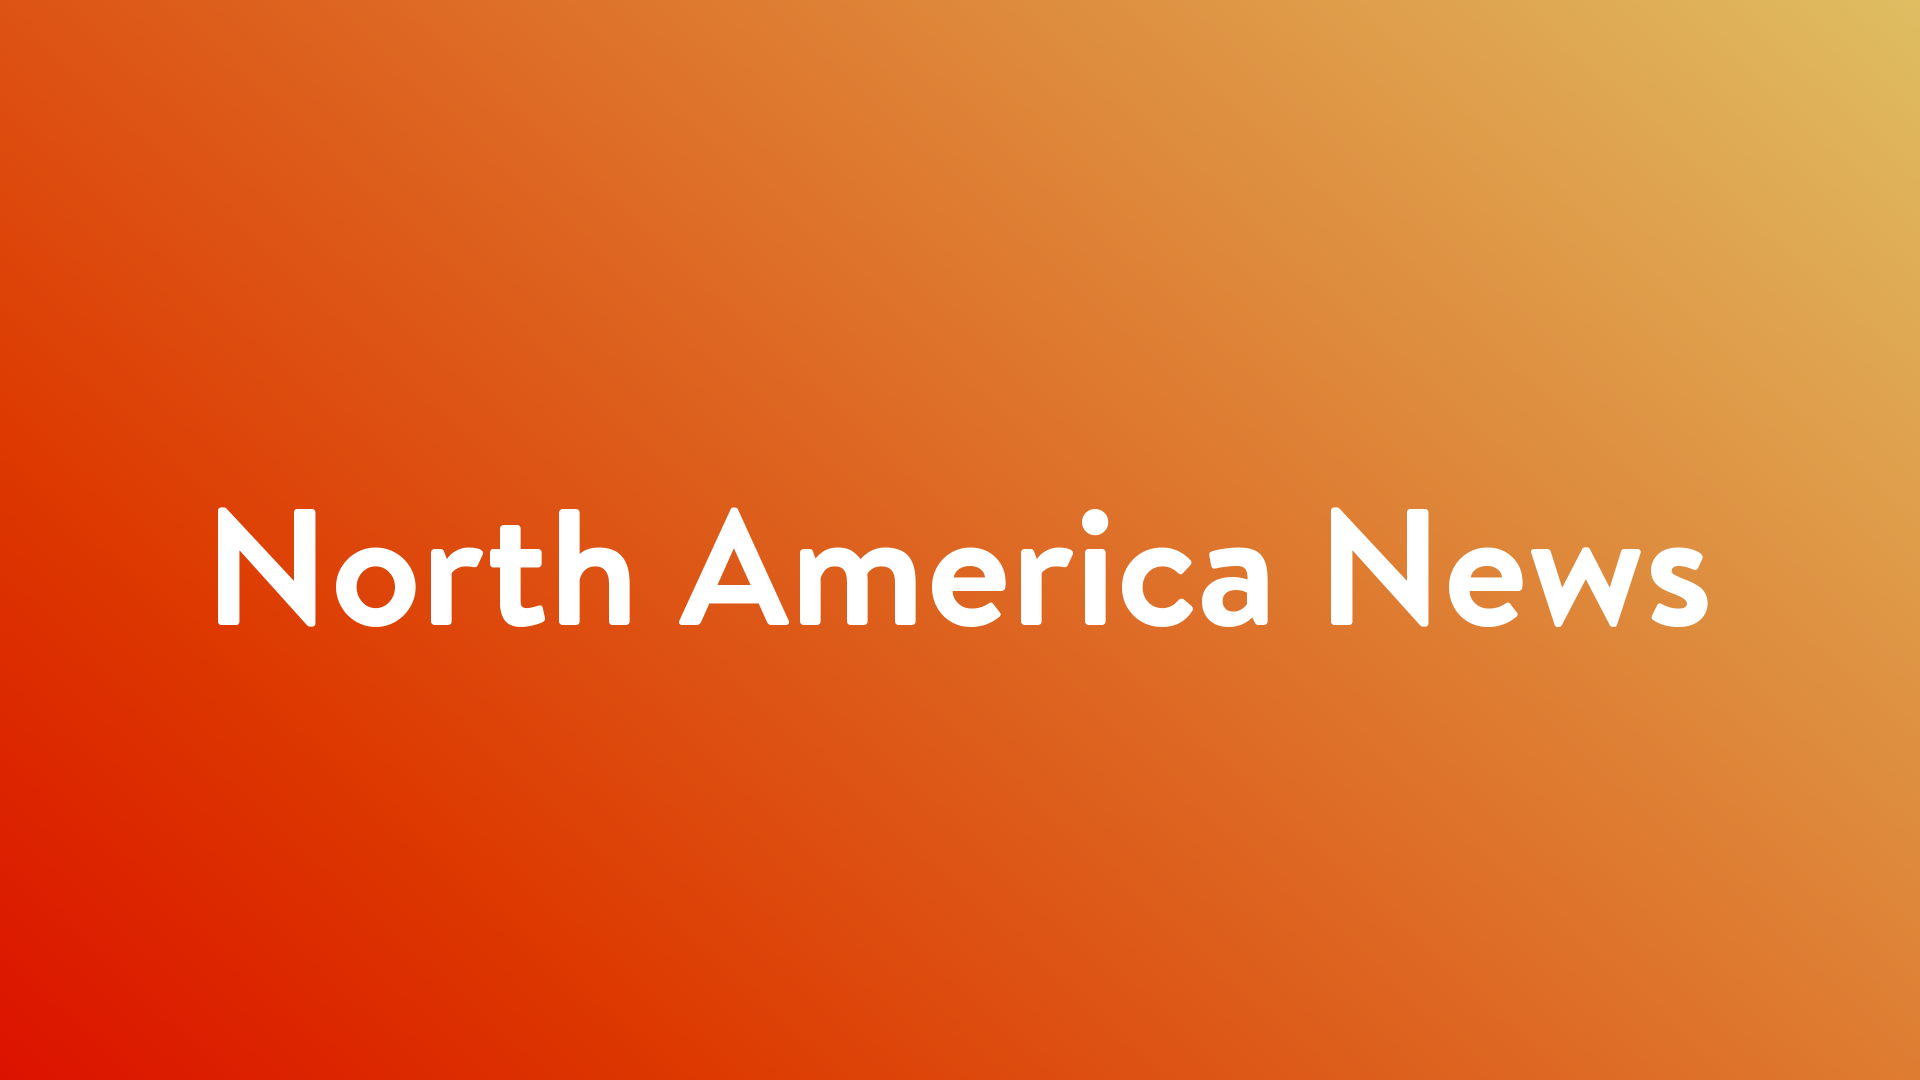 Stream And Watch North America News Online | Sling TV